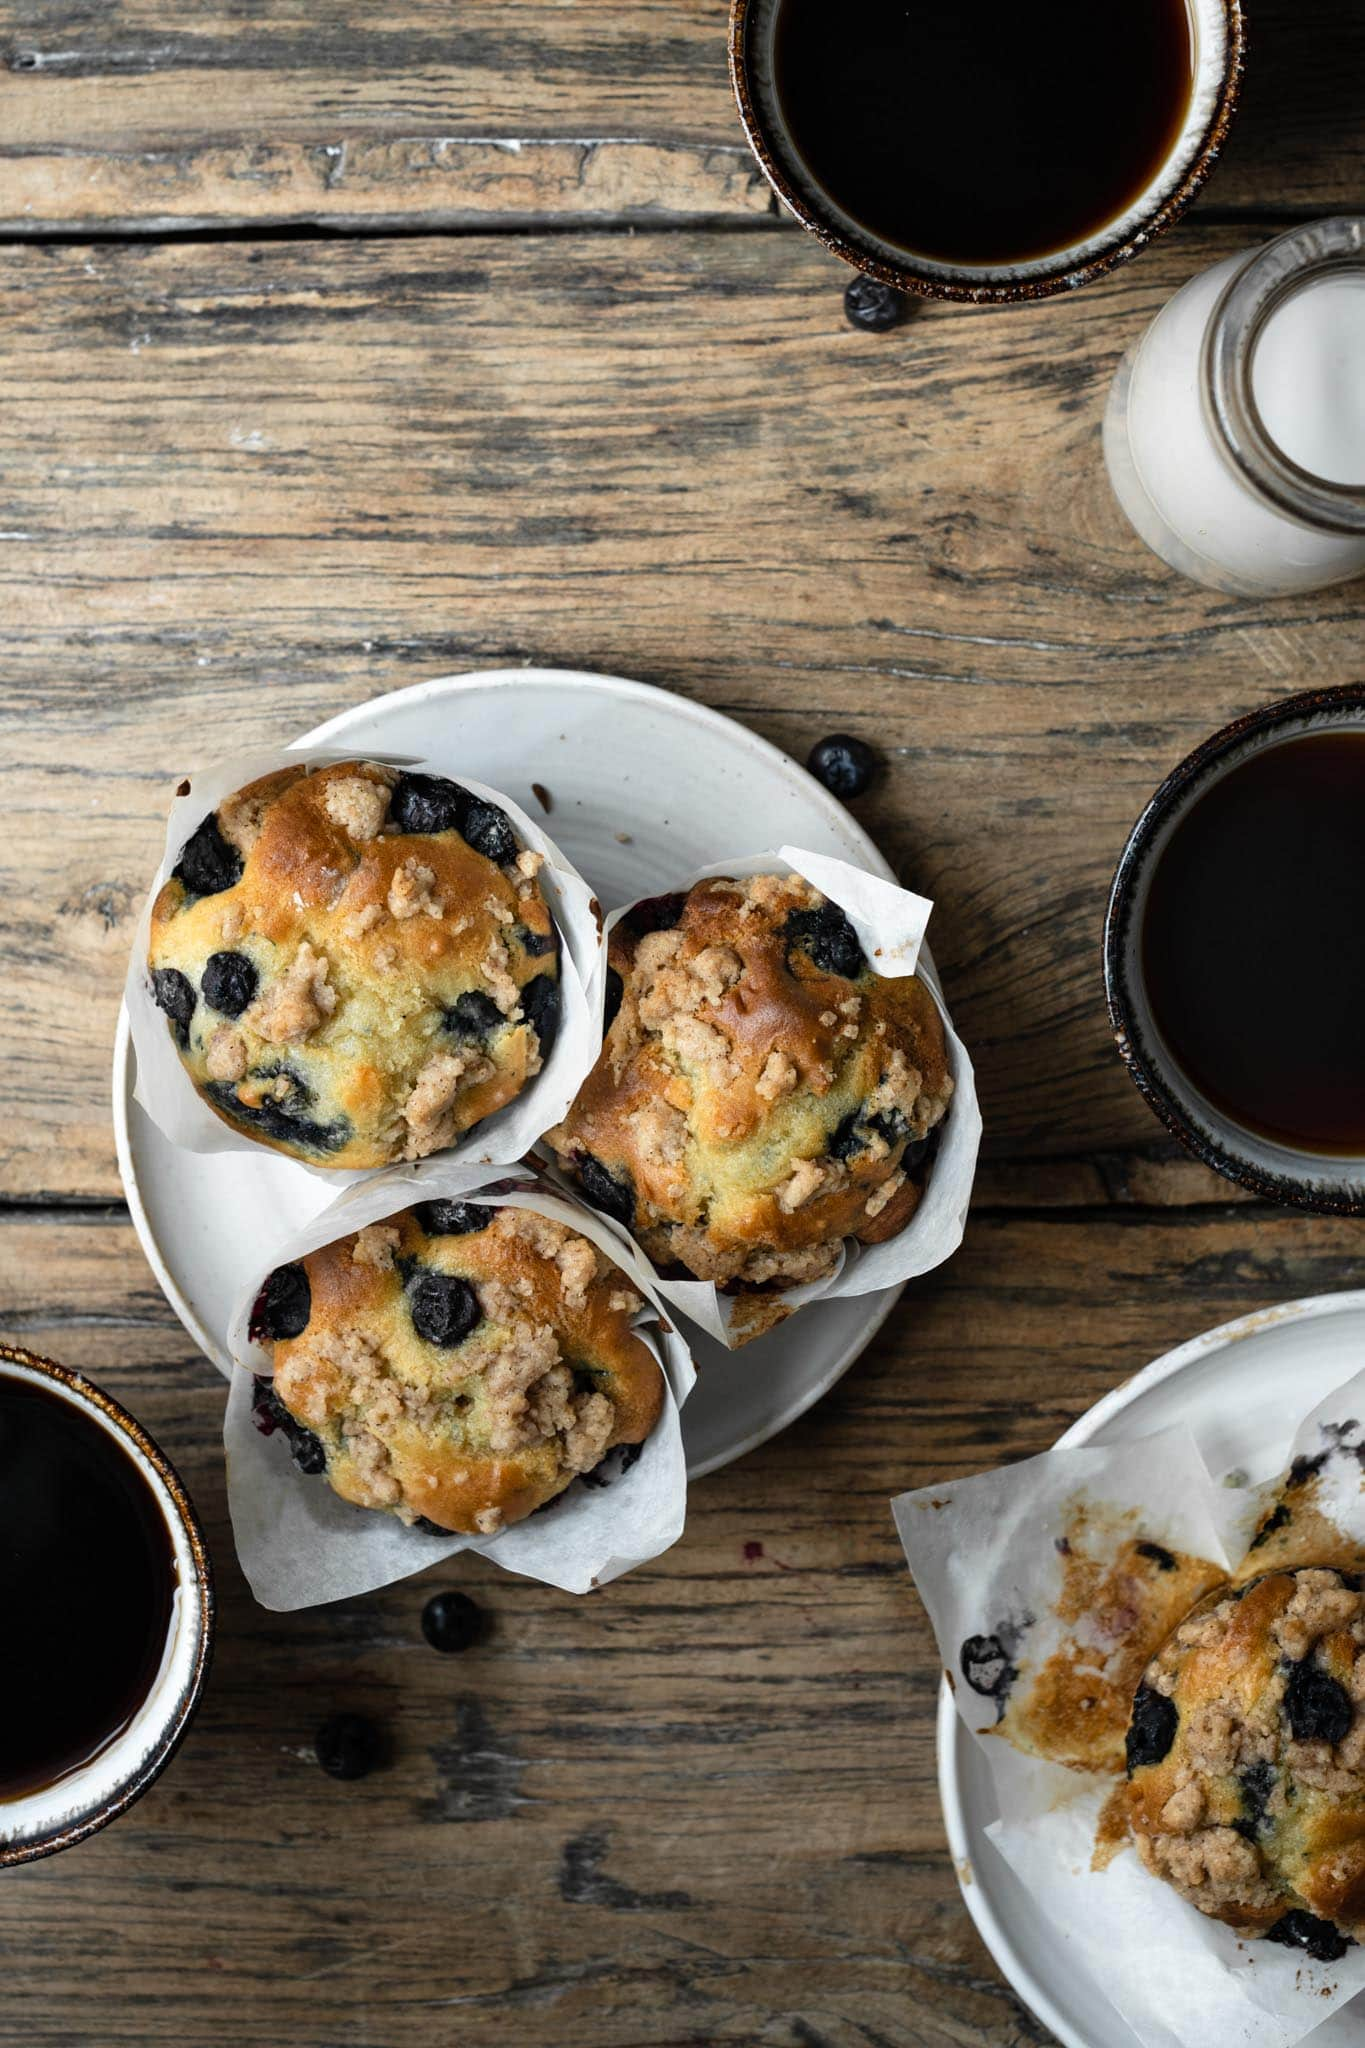 Recipe for blueberry muffins with coffee crumble.